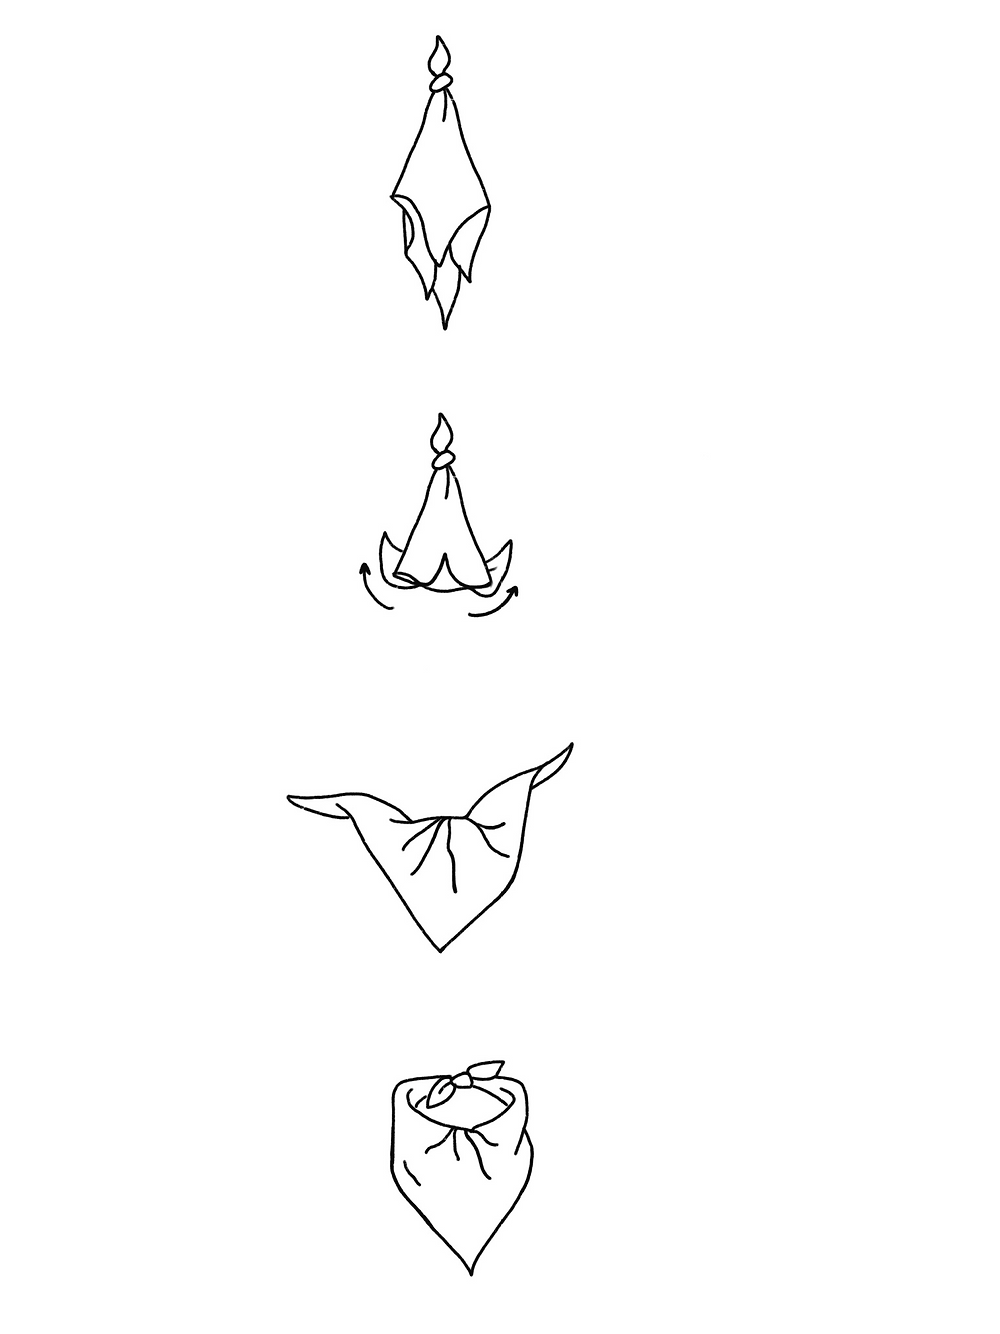 CARMENTA - drawing textured triangle knot tutorial, Costa Rica design and art printed on fabric